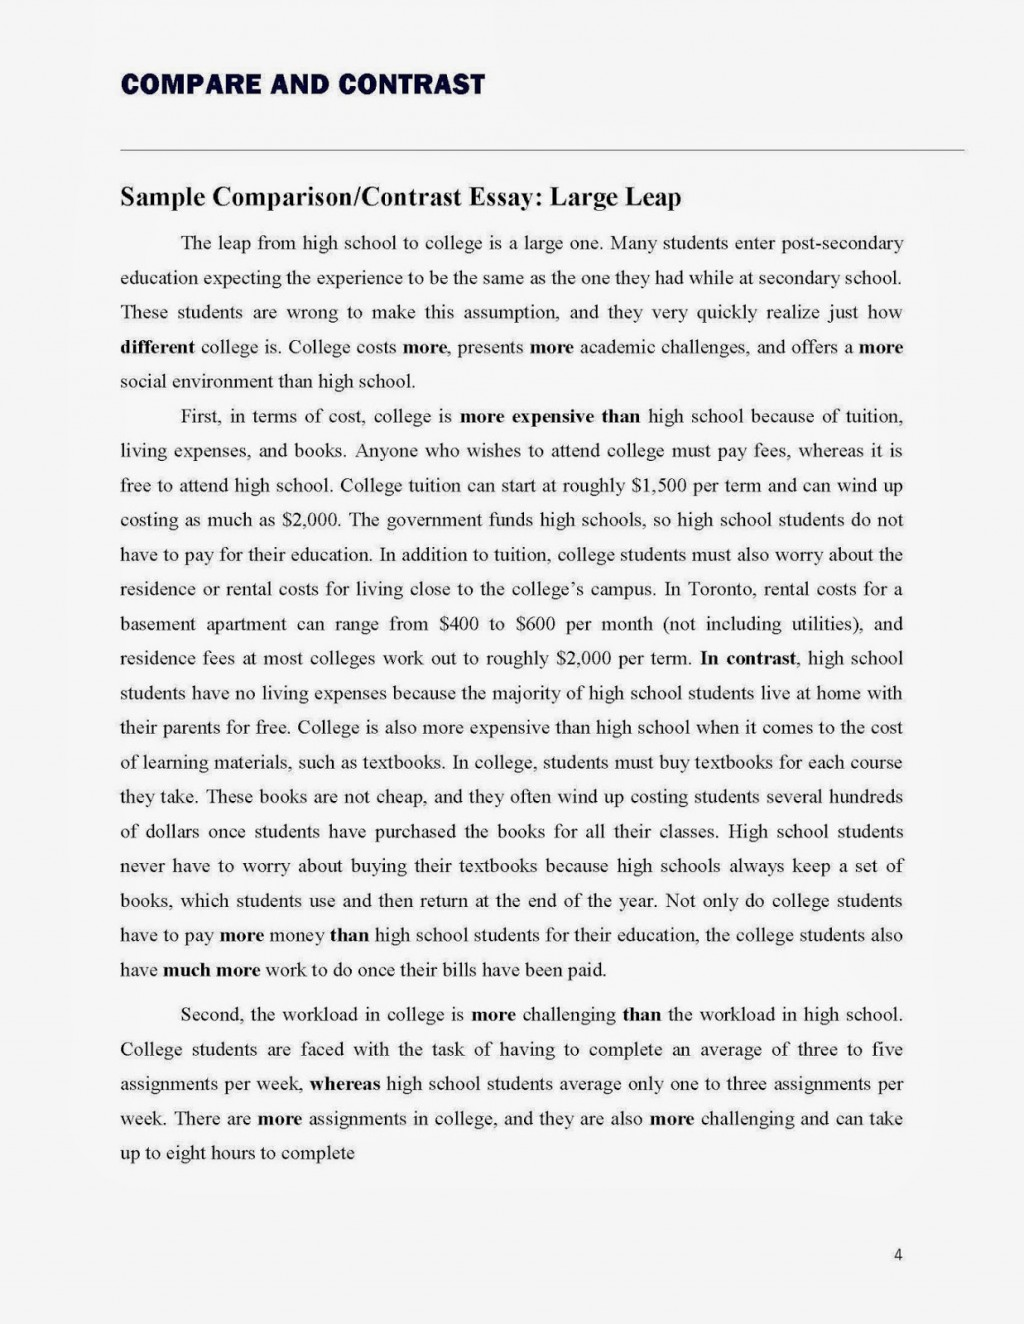 011 Compare And Contrast Essay Compareandcontrastessay Page 4h125 Frightening Topics For College Students Rubric 4th Grade Ideas 7th Large